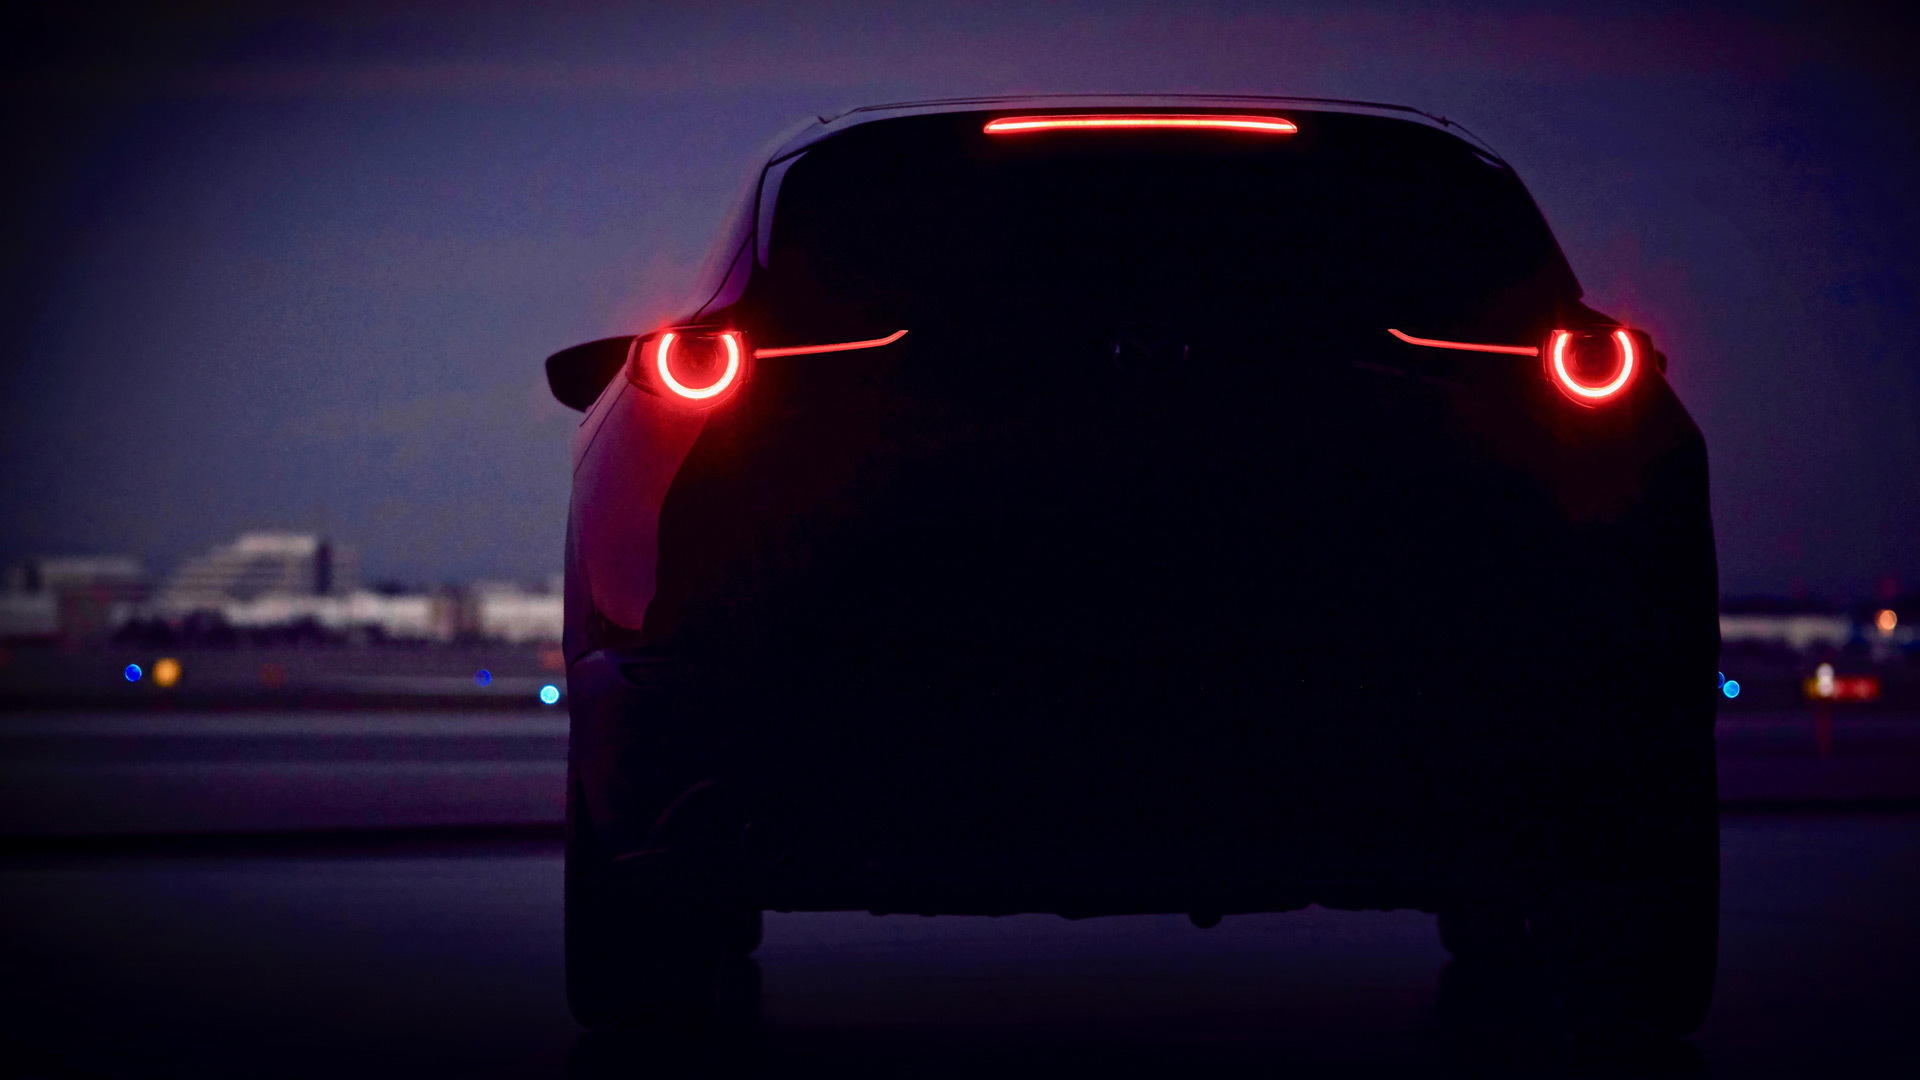 Teaser for new Mazda SUV debuting at 2019 Geneva auto show